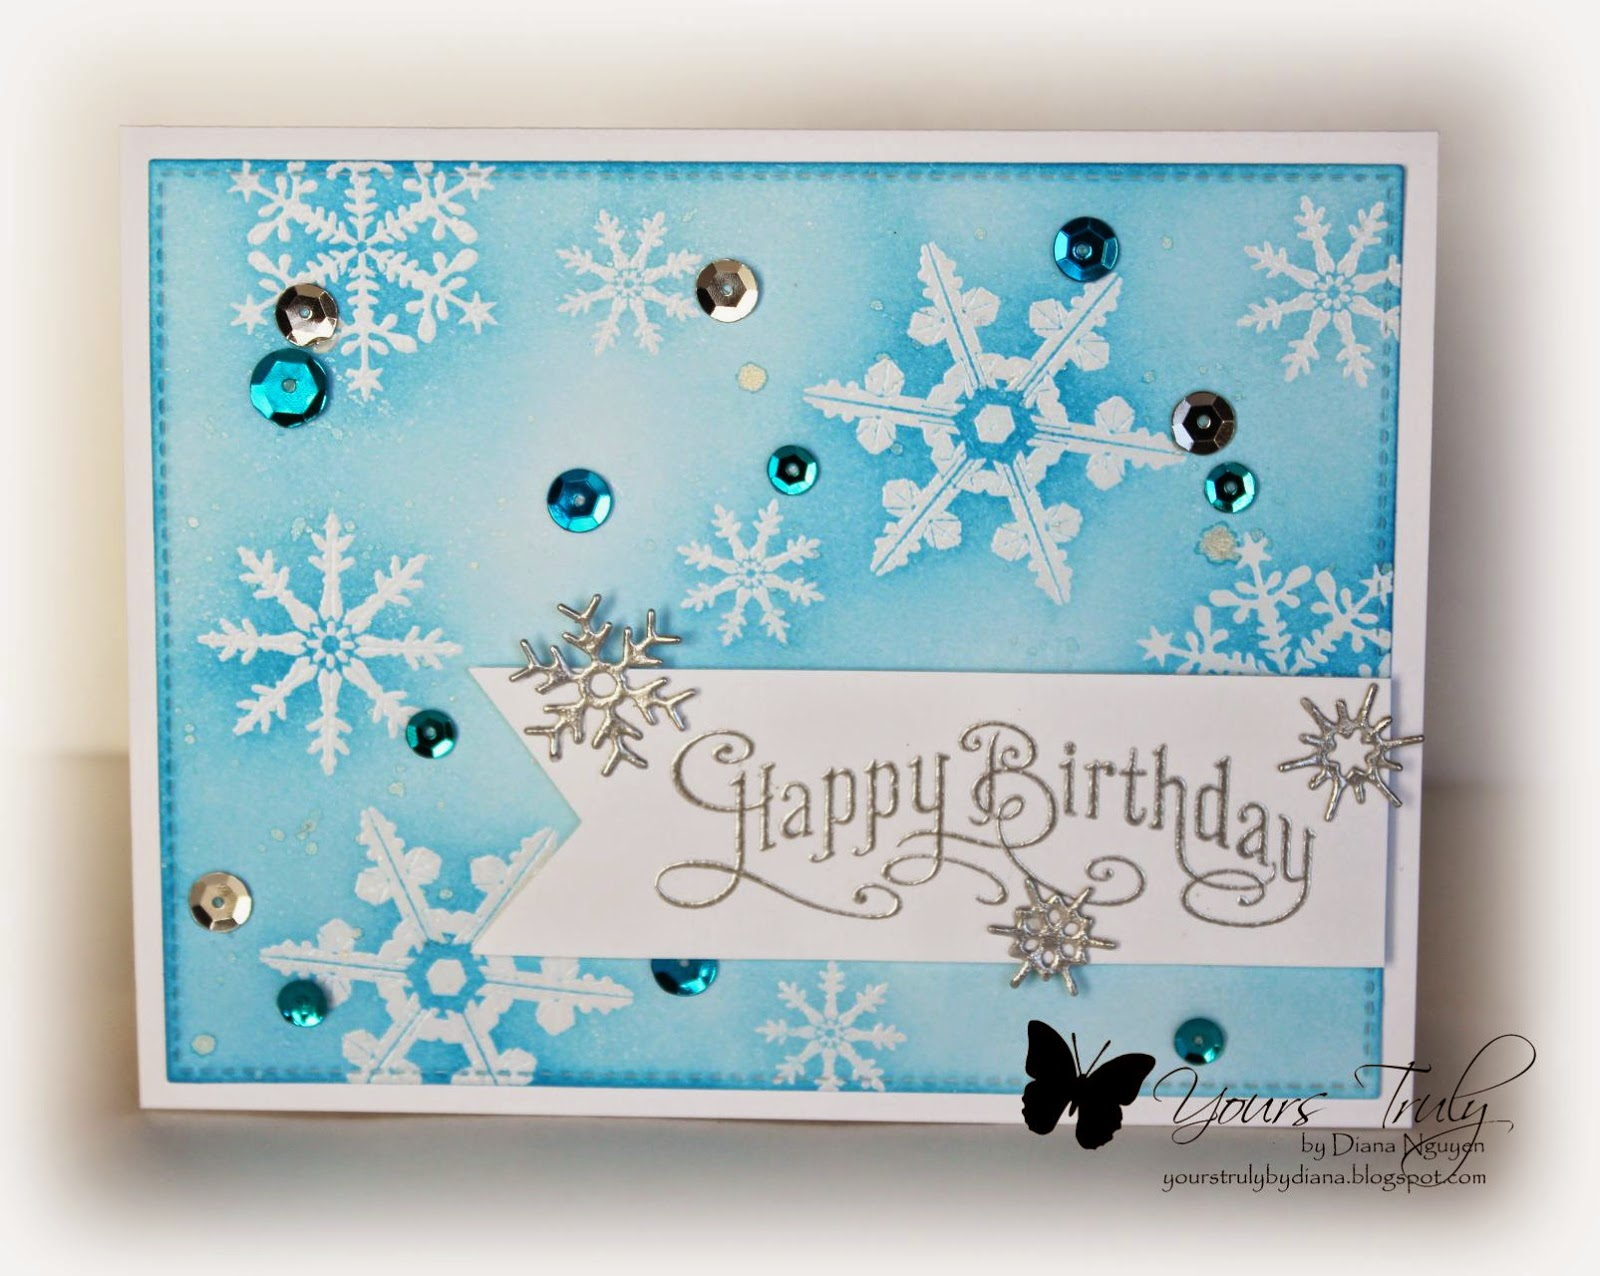 Our Daily Bread Designs, Snowflake, frozen, birthday, card, Diana Nguyen